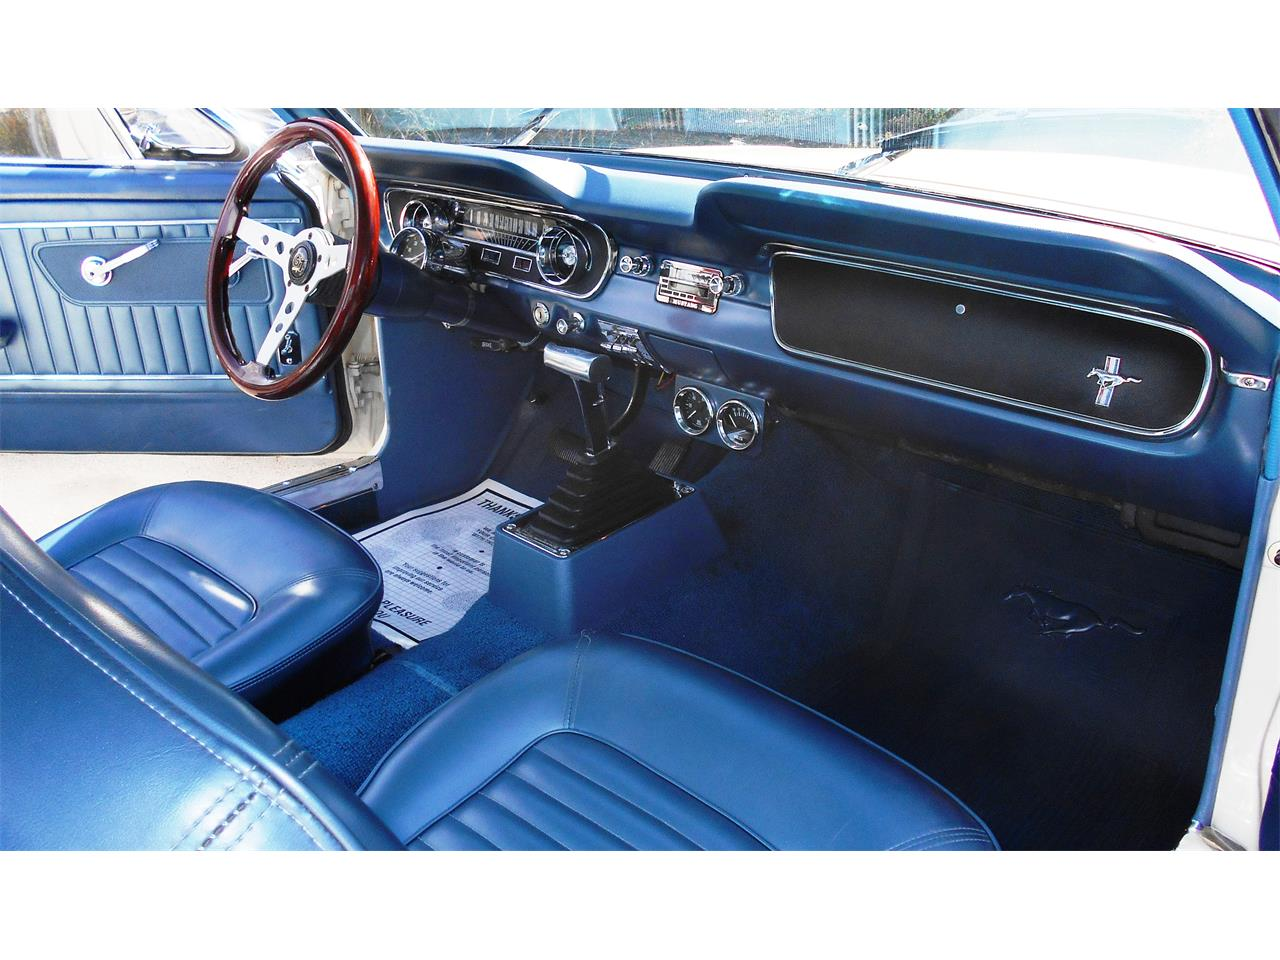 Large Picture of '65 Ford Mustang located in Tacoma Washington - $18,950.00 Offered by Austin's Pro Max - JB63